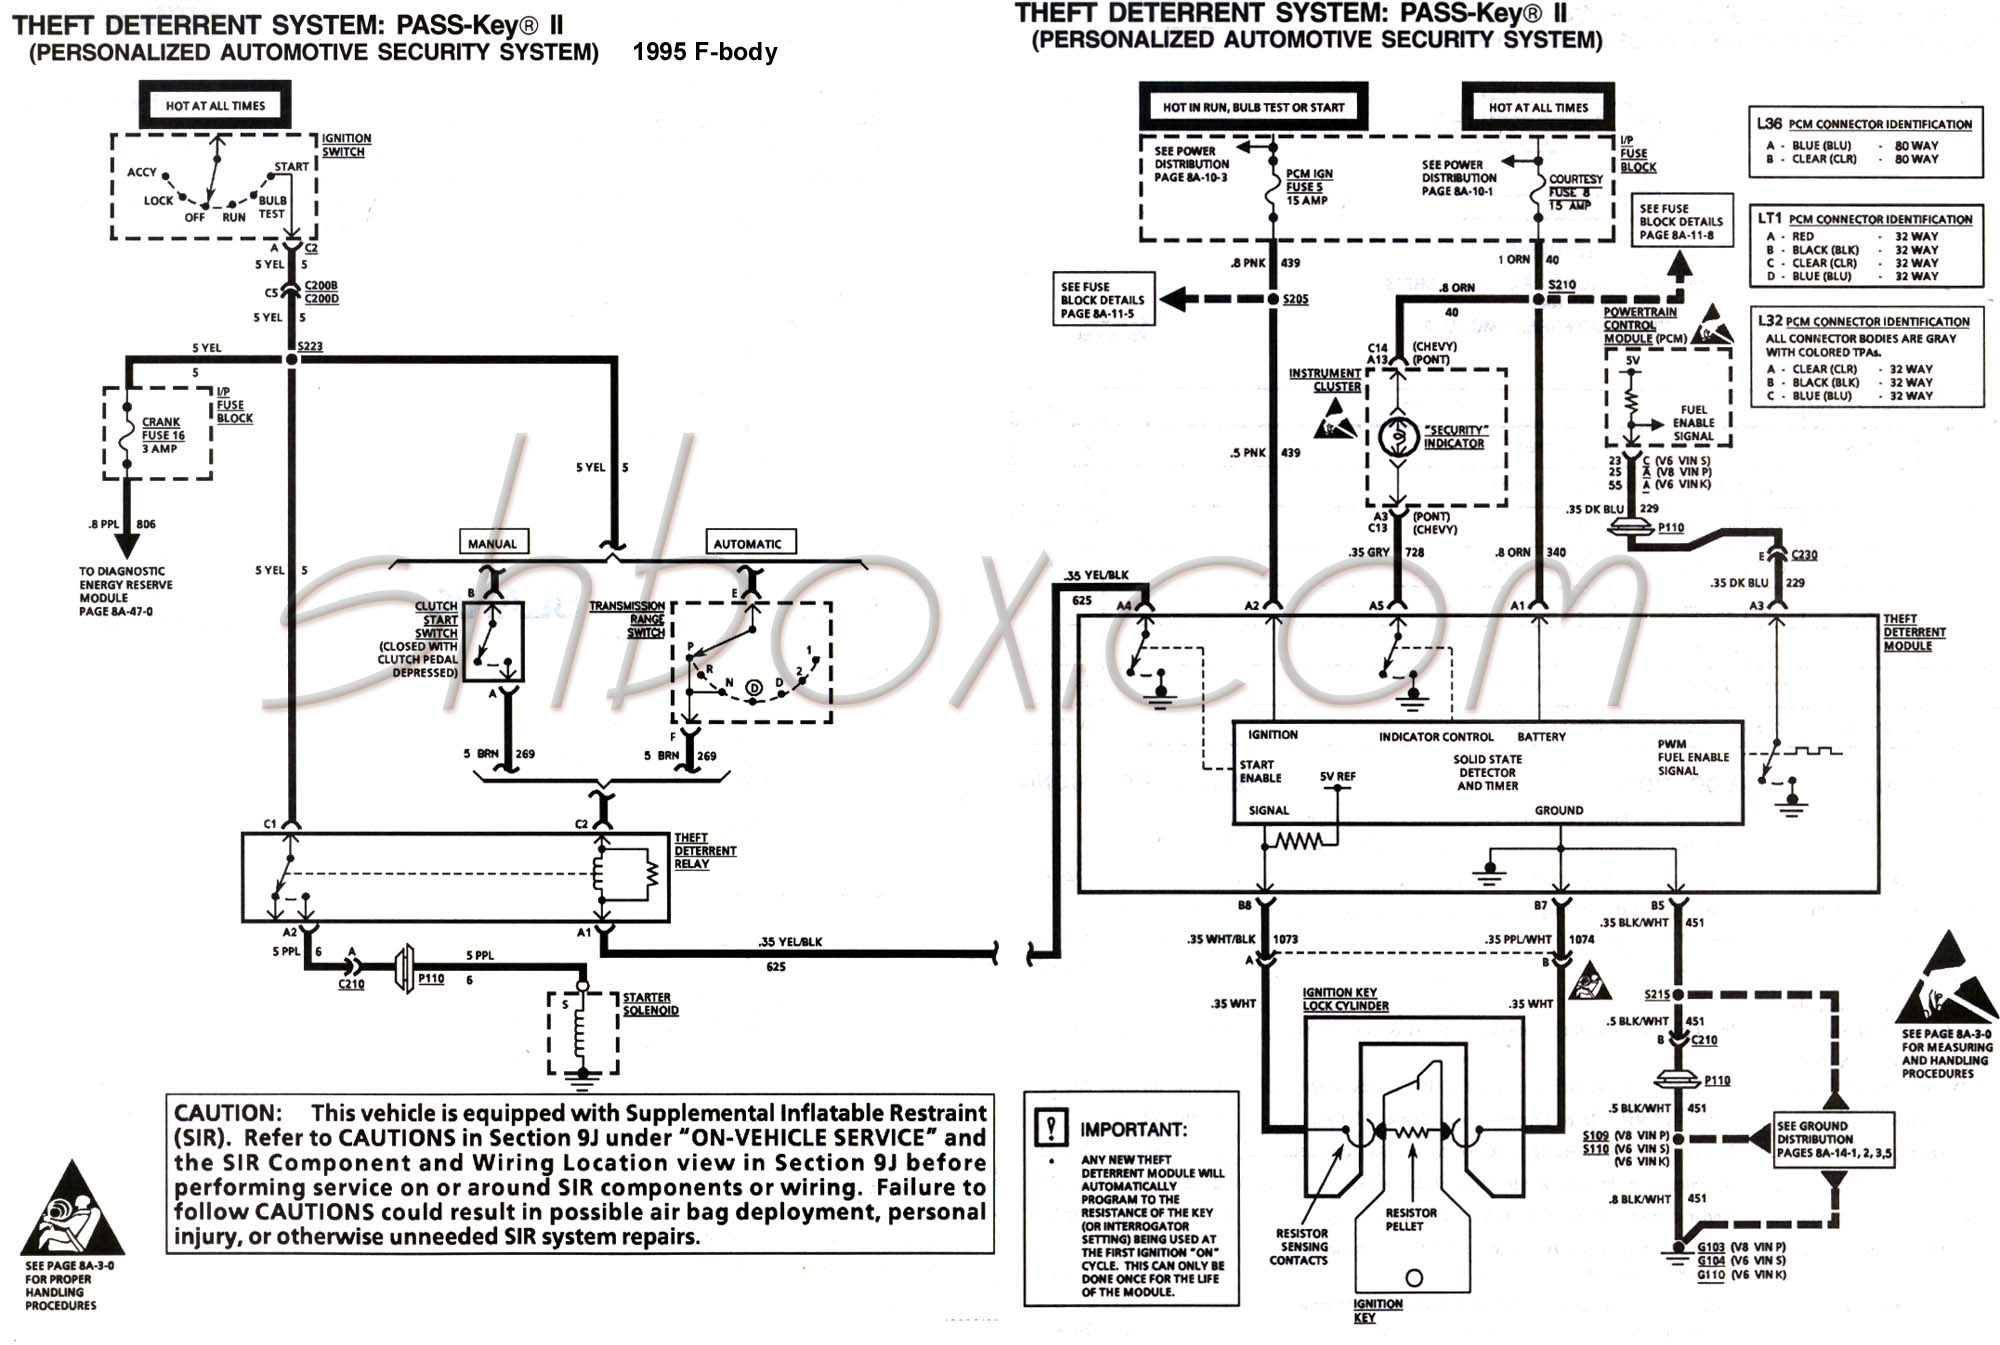 1995 Impala Ss Engine Wiring Diagram Start Building A Images Gallery